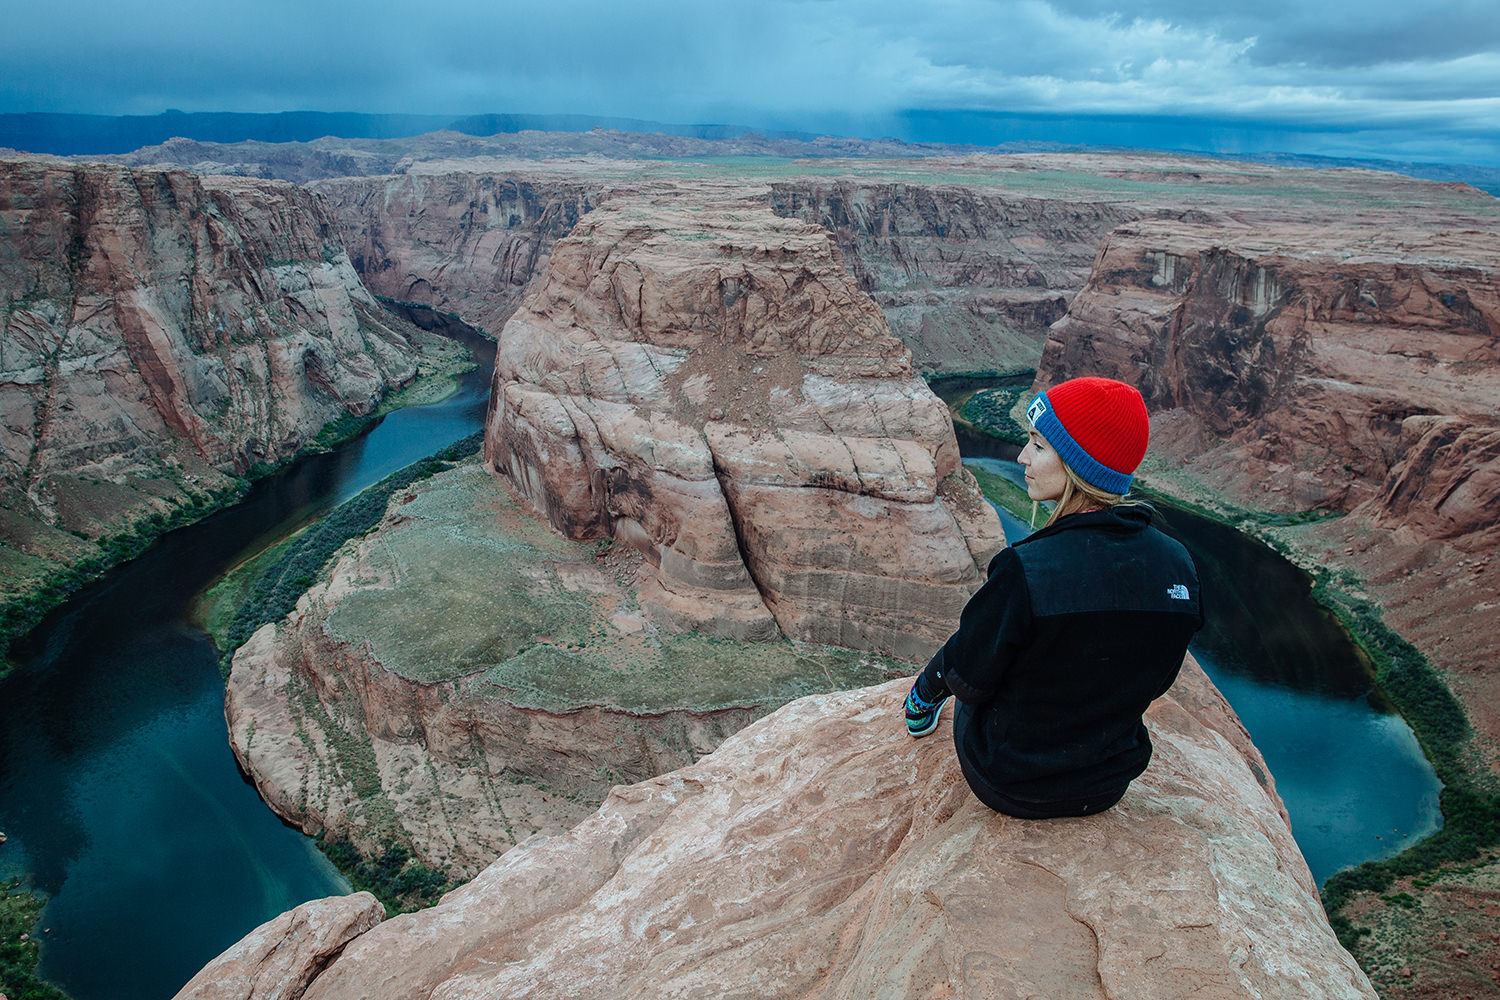 Huckberry grand canyon national park kylie turley know before you go horseshoe bend.jpg?ixlib=rails 2.1